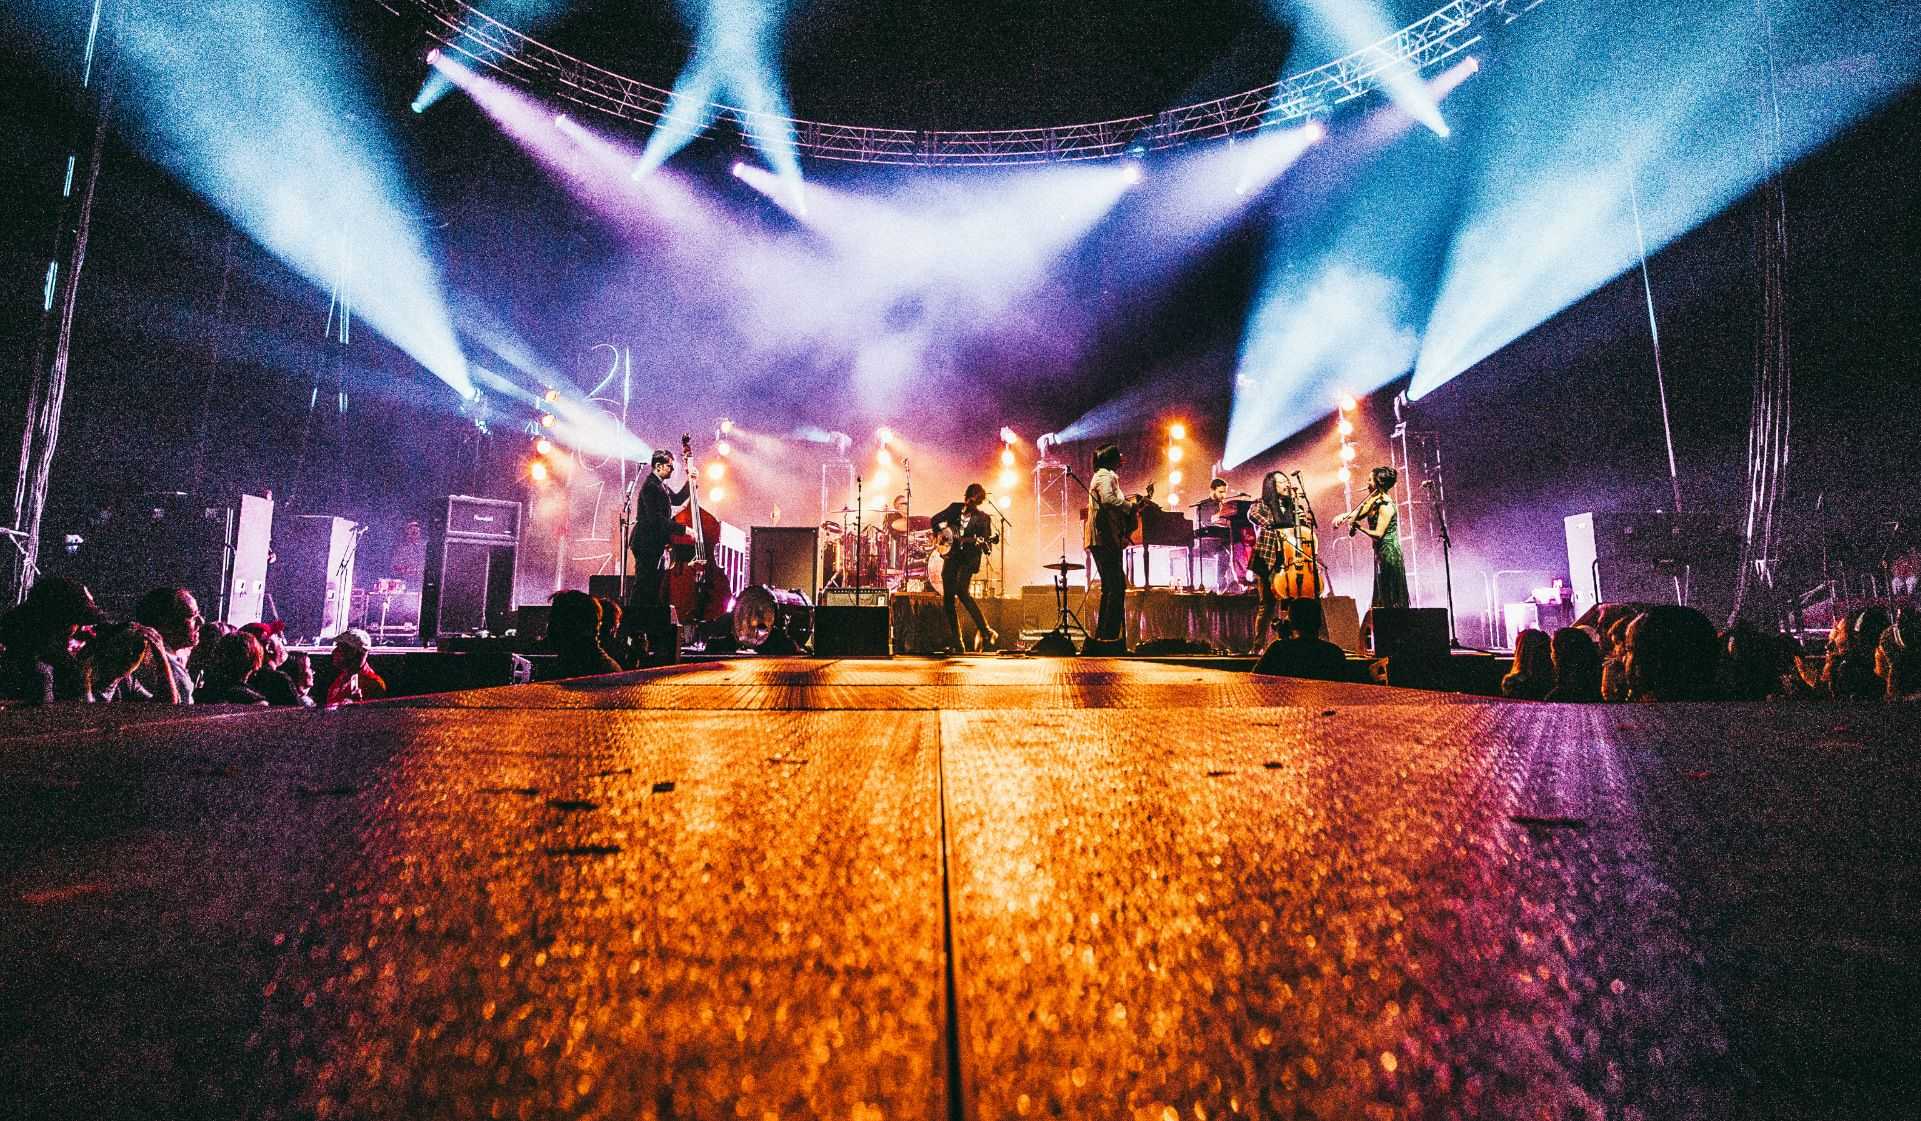 Event Management For Music Concerts